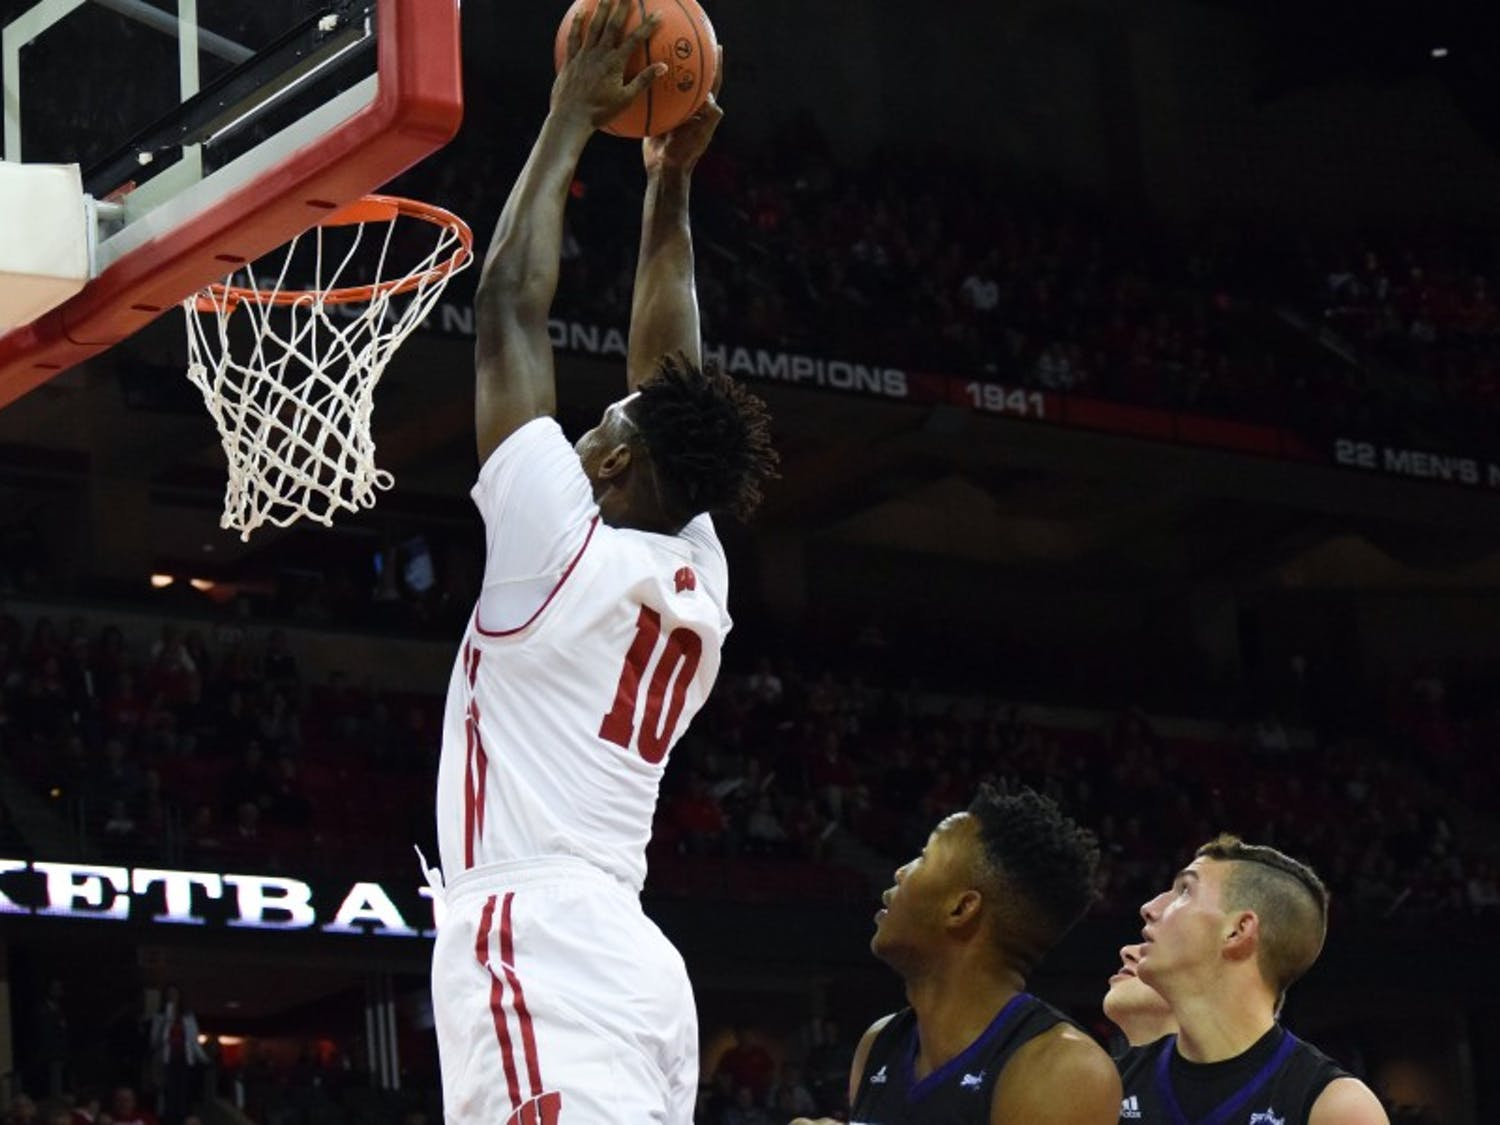 Nigel Hayes and the Badgers have lost three of four, and desperately need to get back on track.